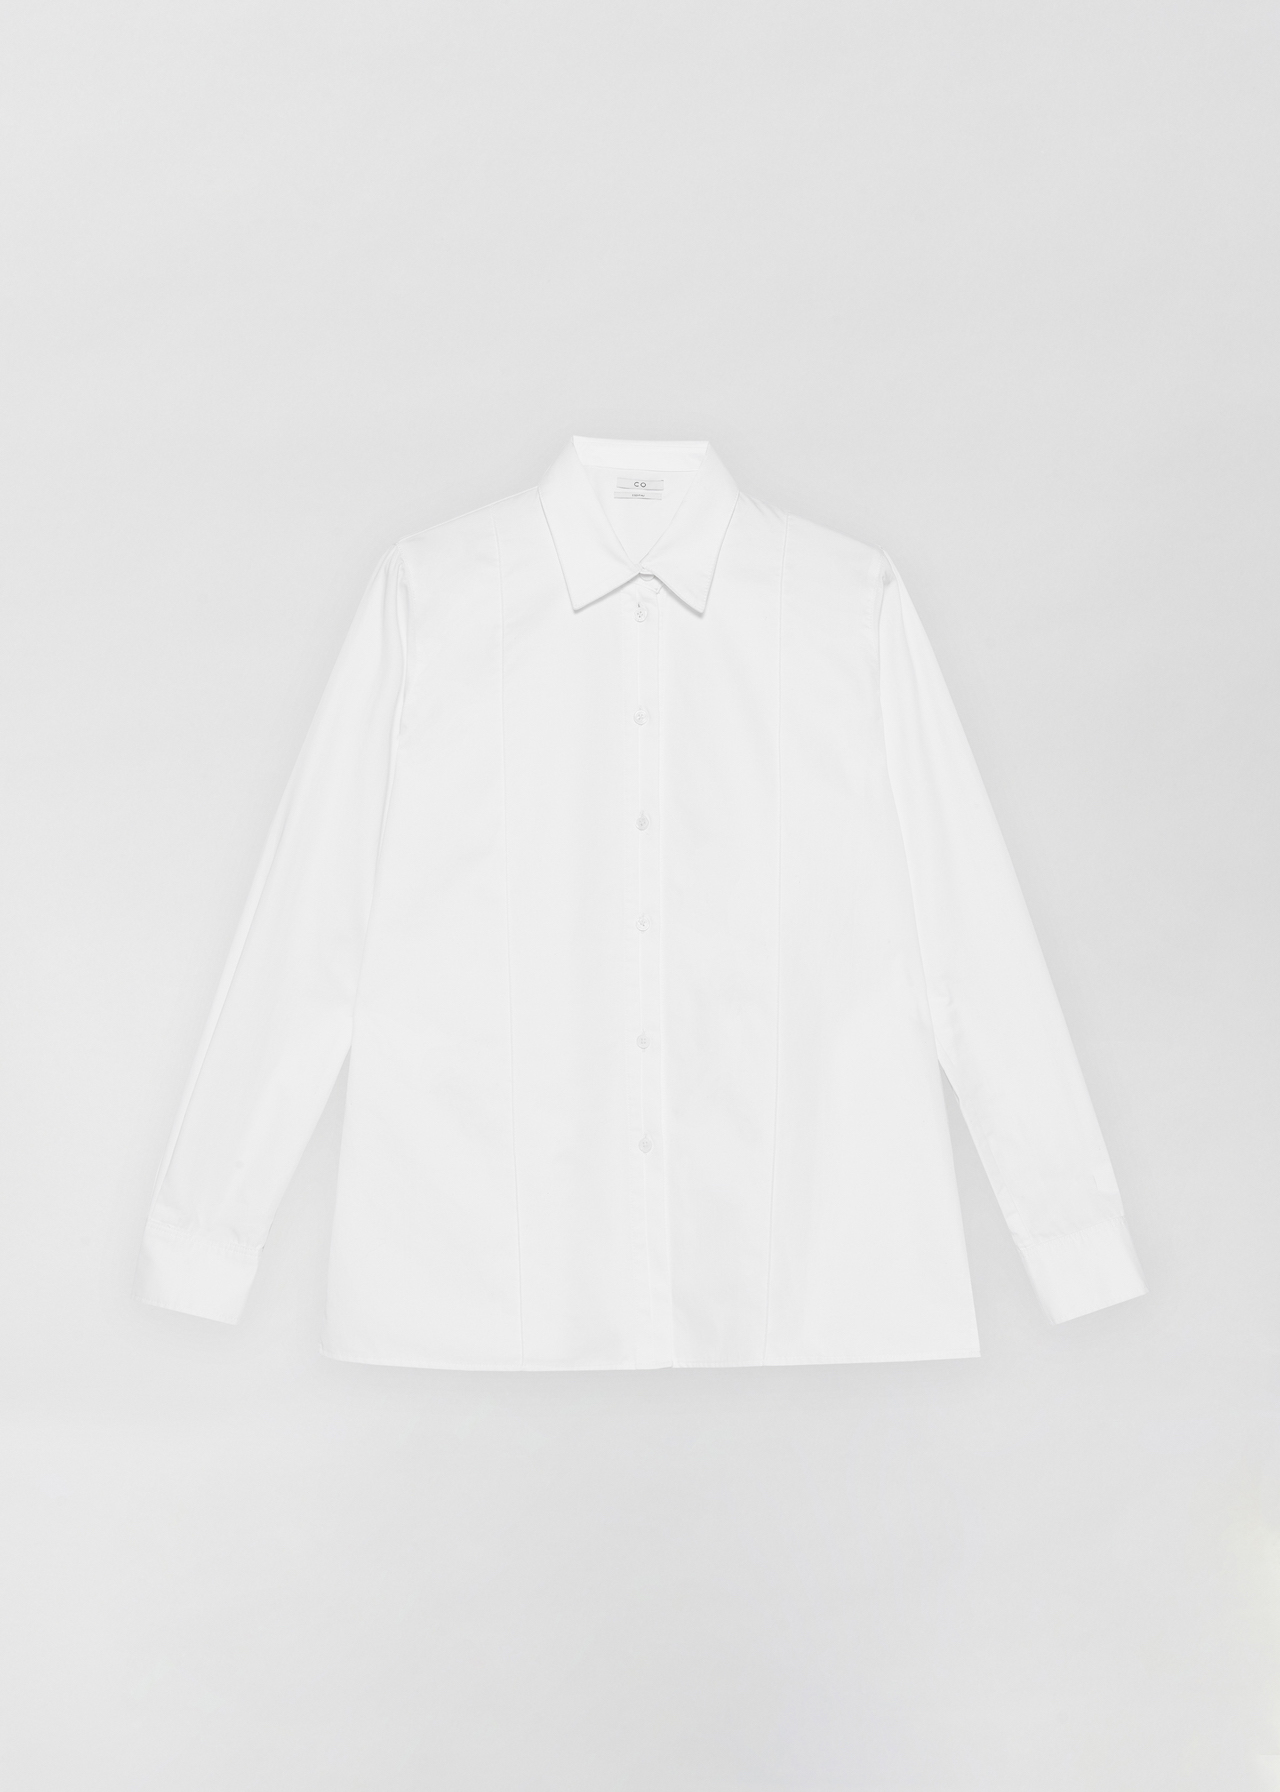 Tucked Placket Button Down Shirt - Black in White by Co Collections